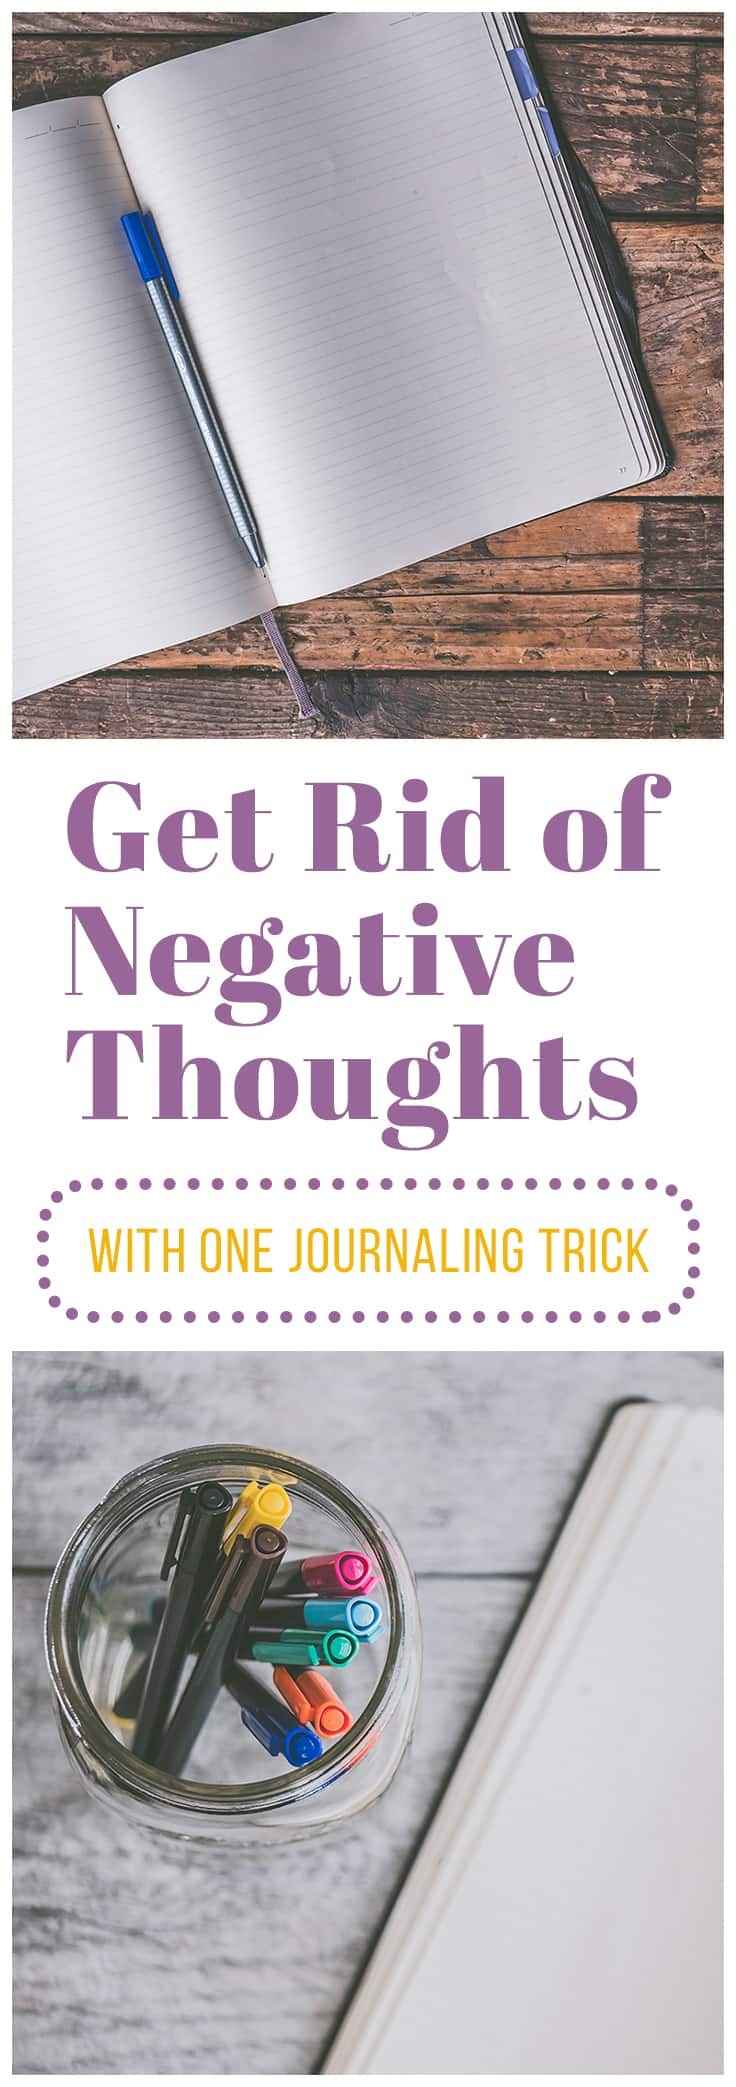 Have you ever wondered how to get rid of negative thoughts? It's not as hard as you might think with the help of one simple technique: black journaling.  Black journaling will help you rid yourself of persistent negative thoughts and move on with your life. Just click the link to see how.  #selfcare #journaling #journal prompts